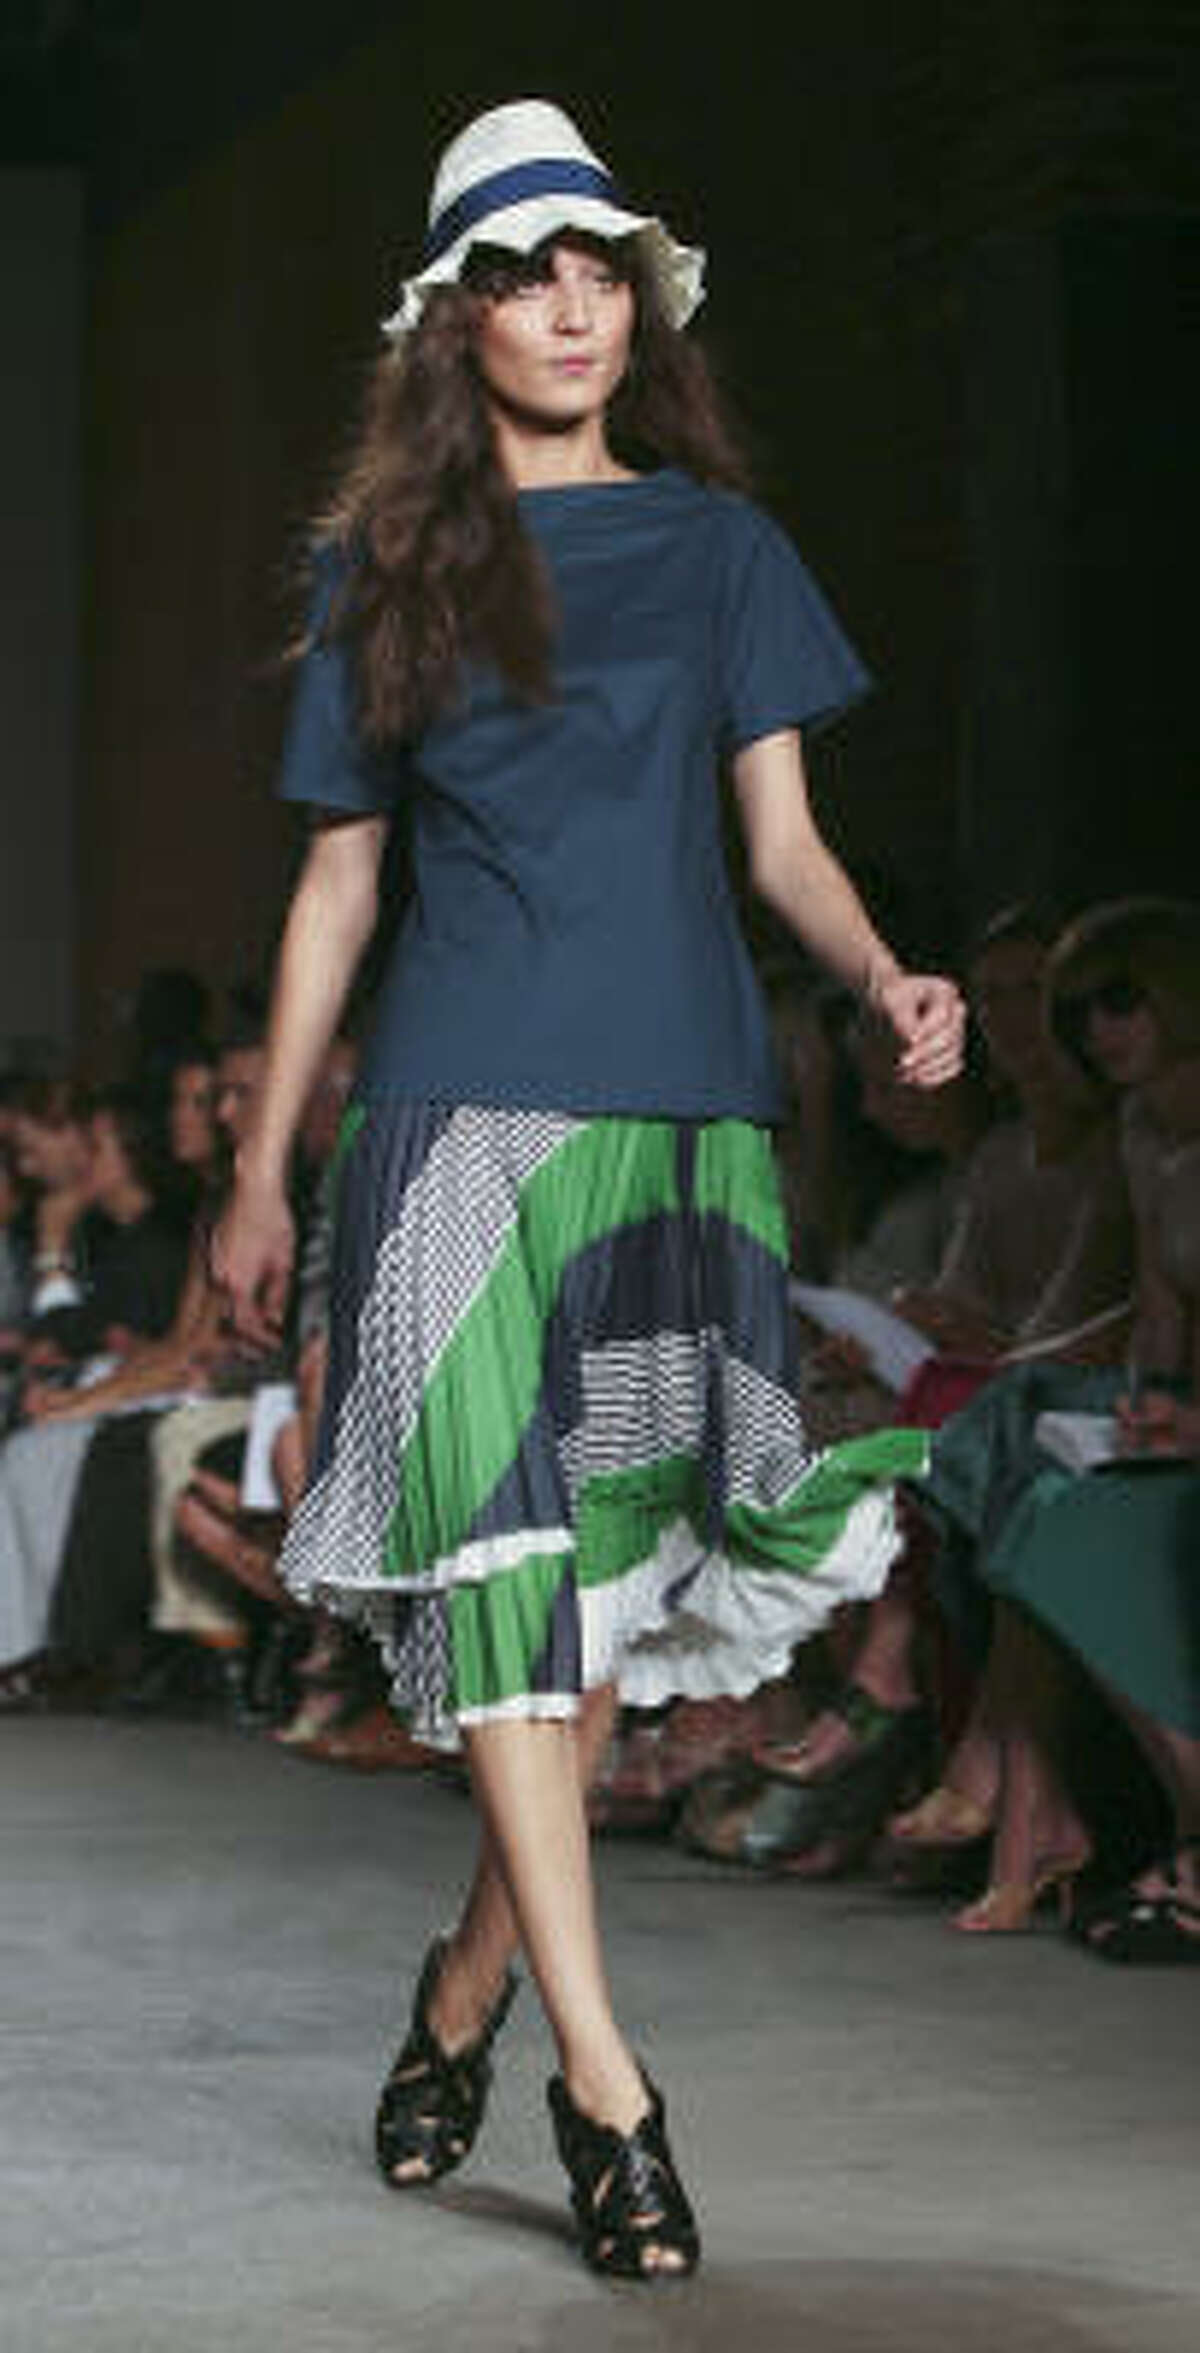 This striped dress was from a recent runway collection, sold at designer prices. (As much as $800 for a skirt, according to a Los Angeles Times reporter who bought one.)